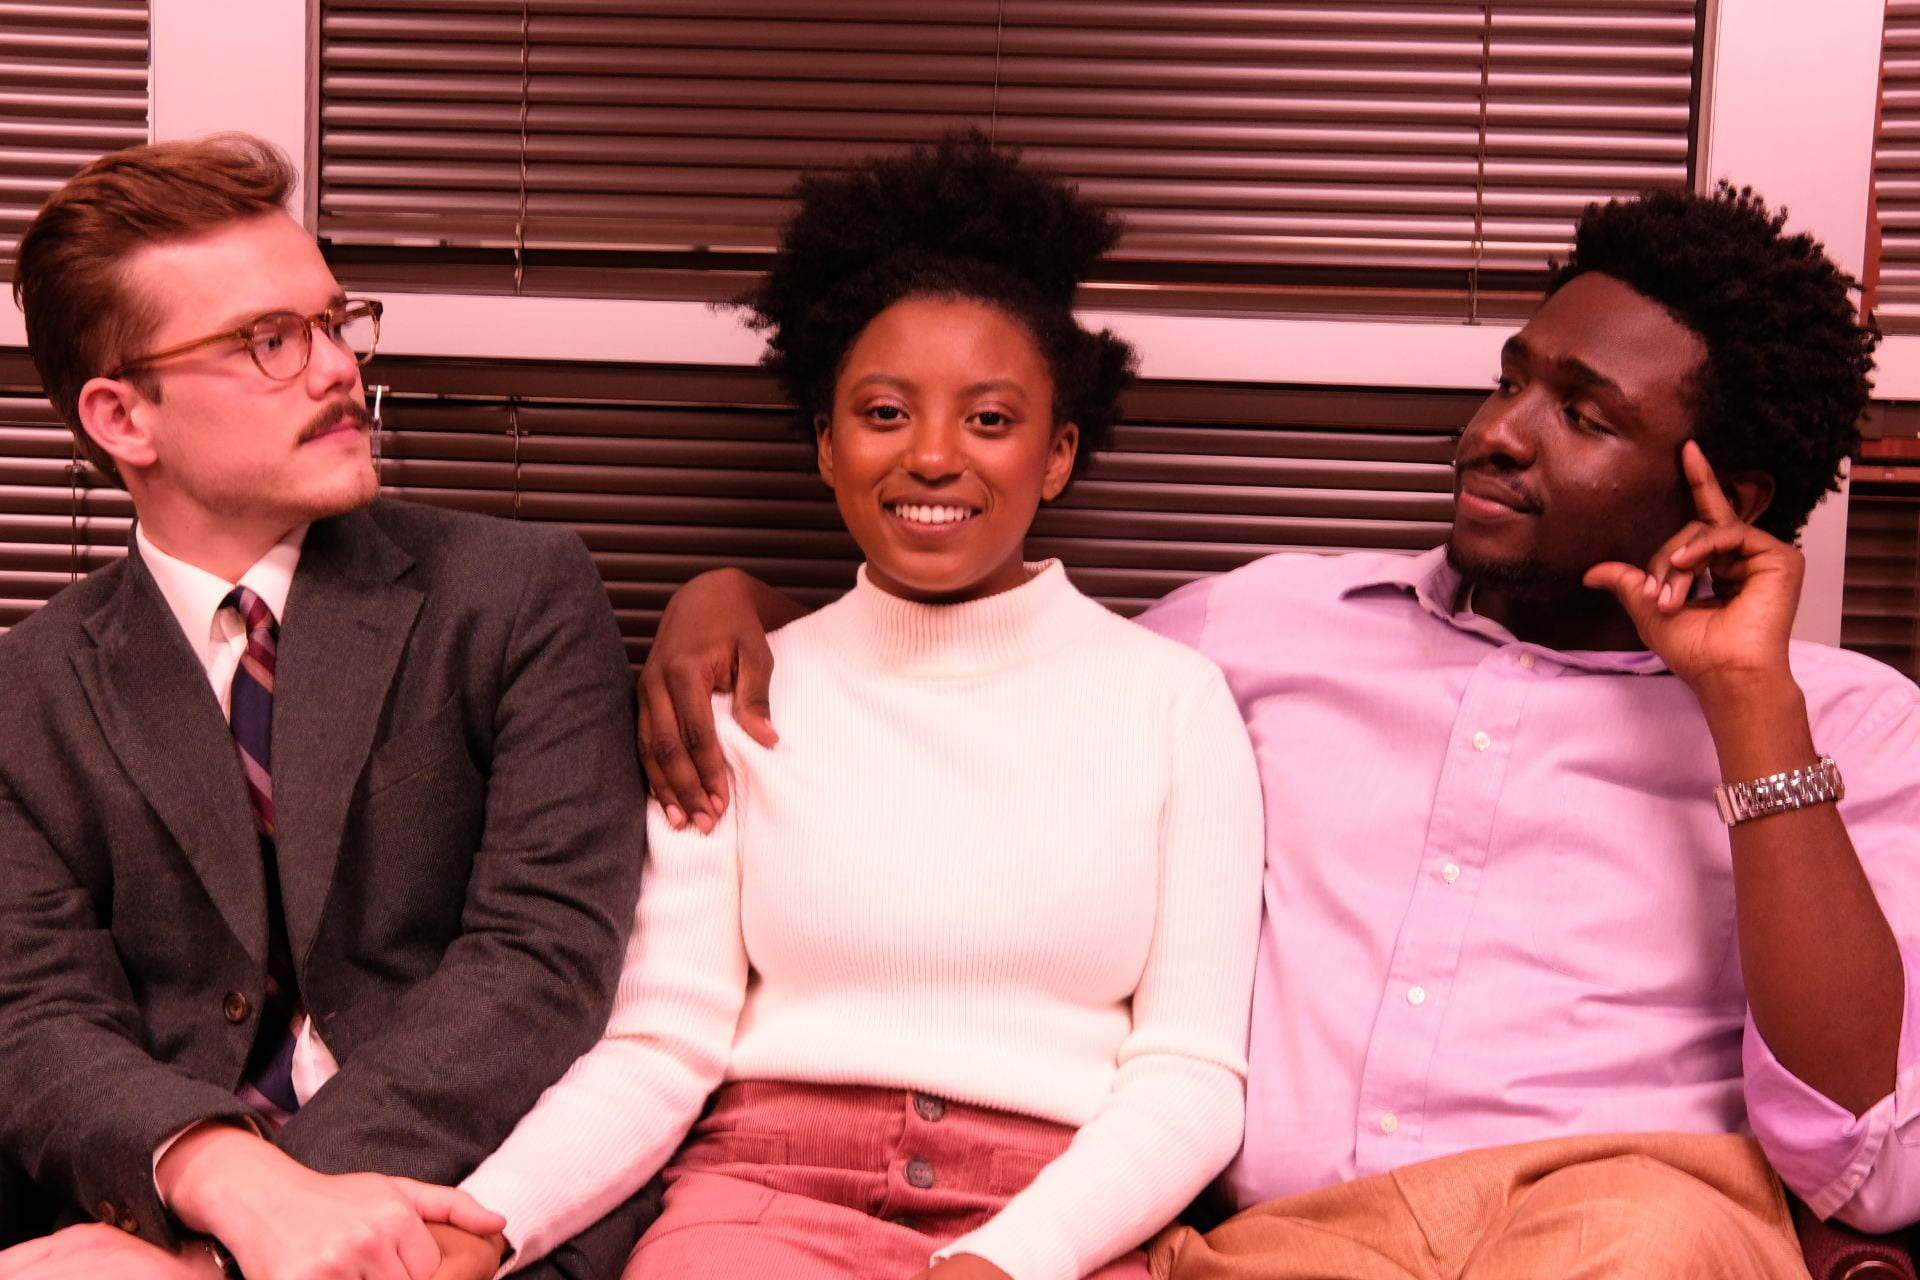 Cast members Steven McCoy, Ashley Clinton as Emma, and Deon'ta White.